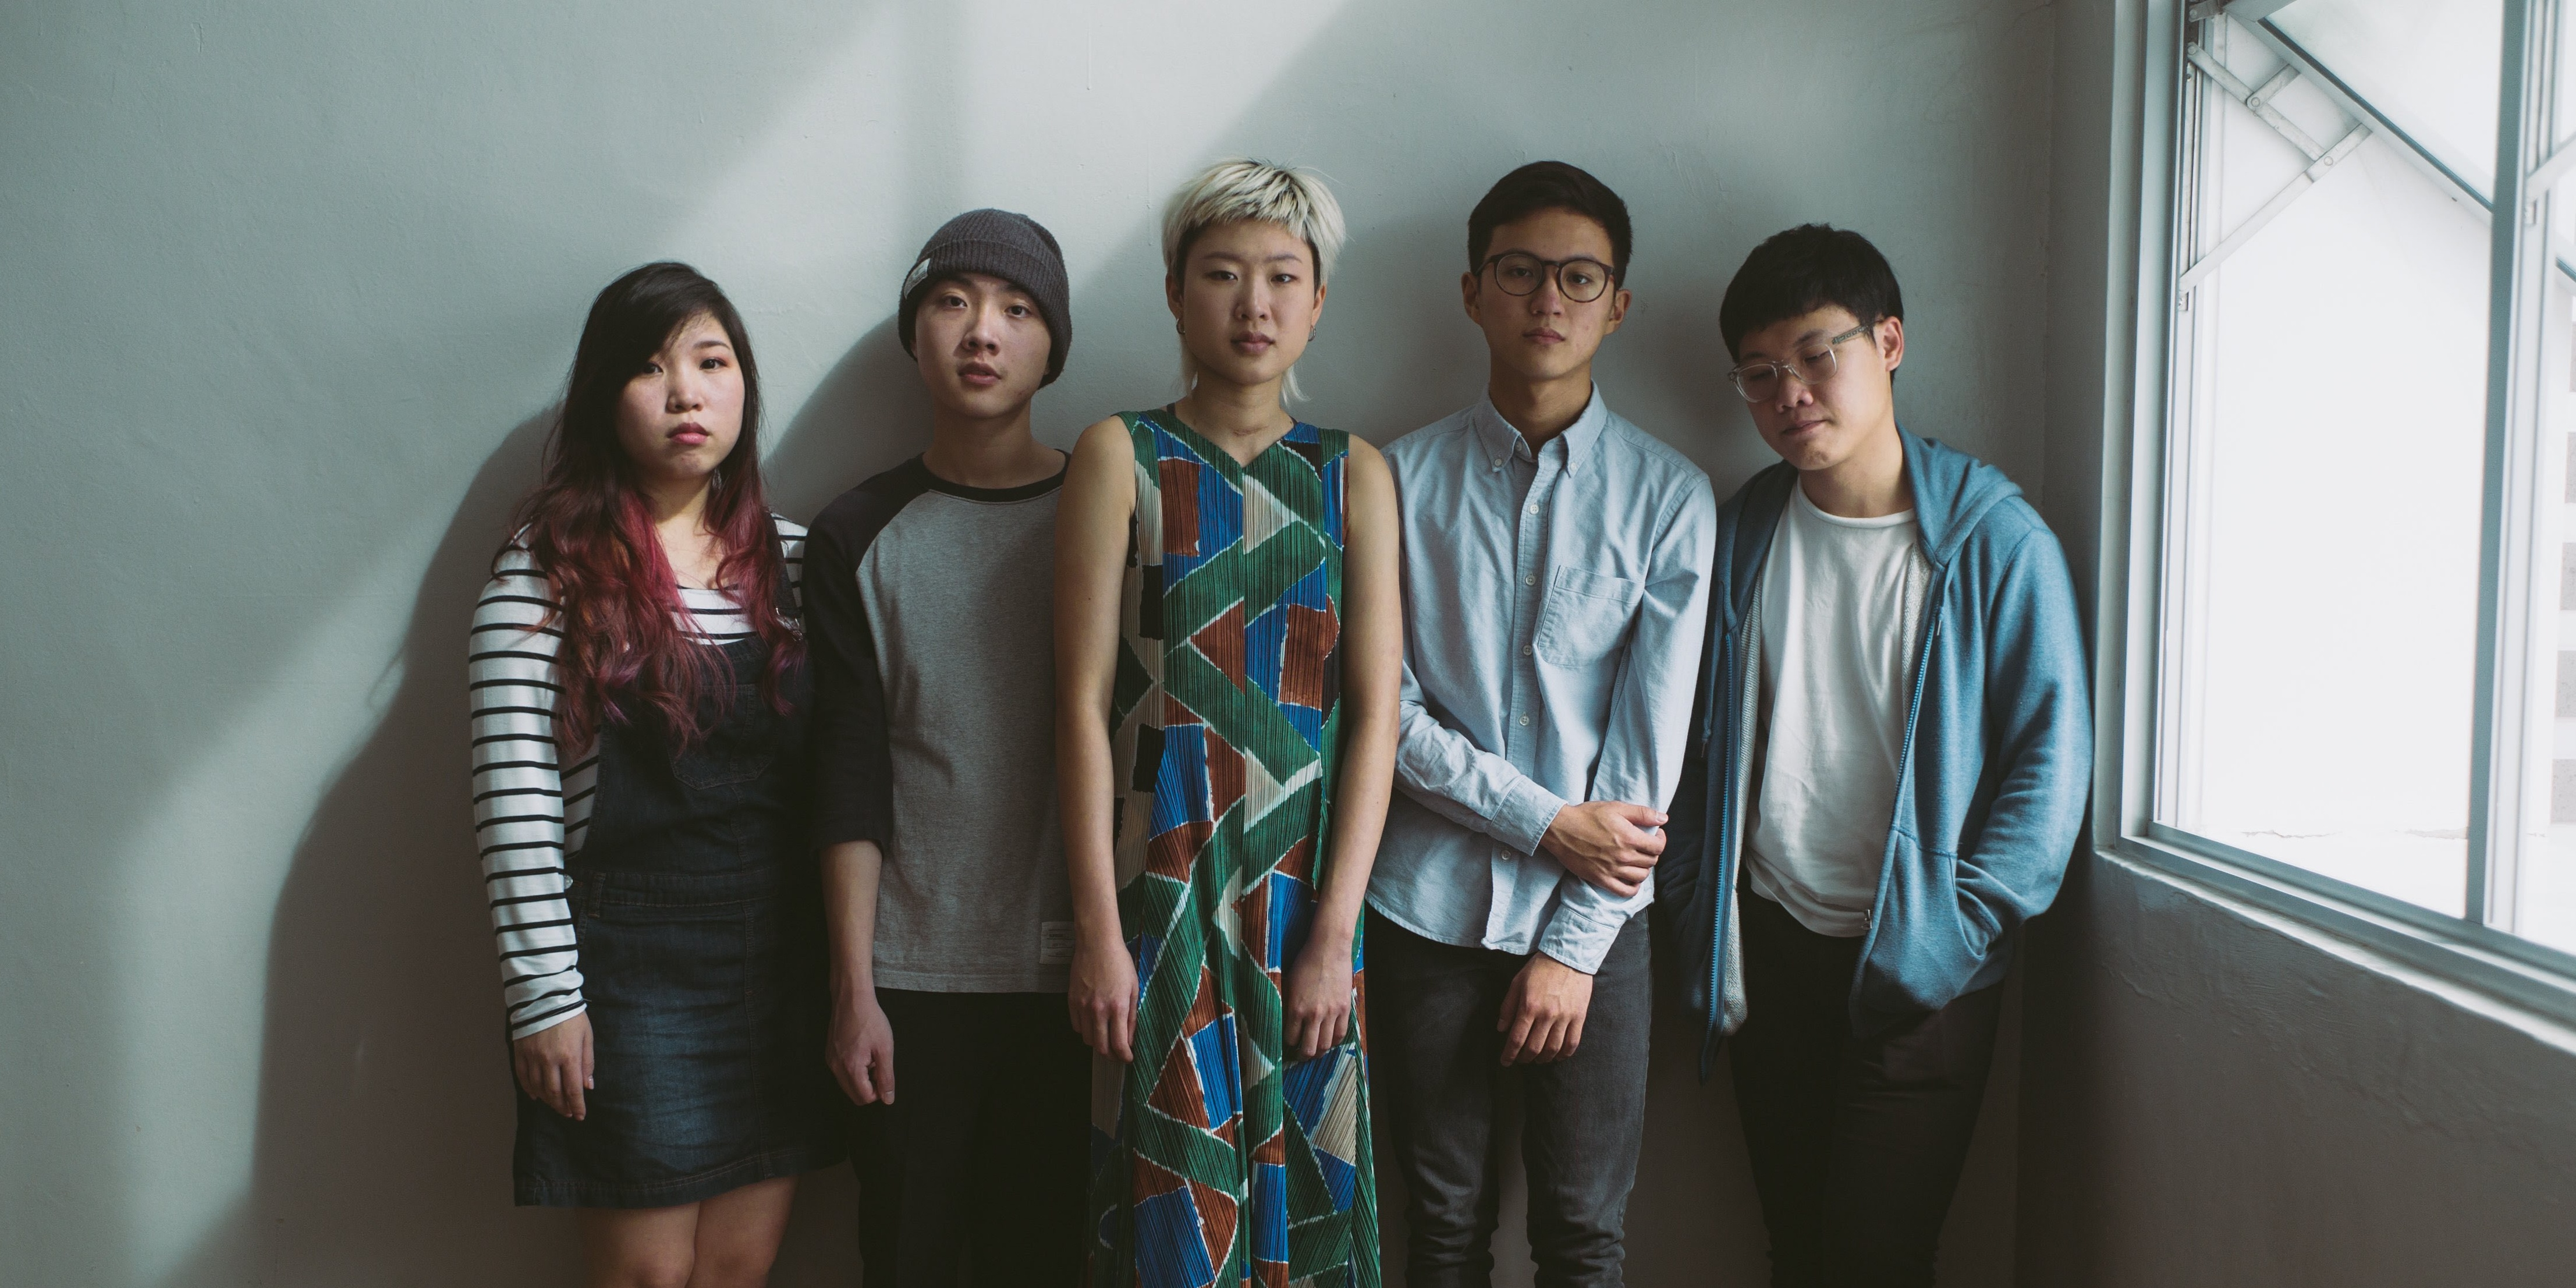 An interview with Cosmic Child, whose sophomore album Blue is out today